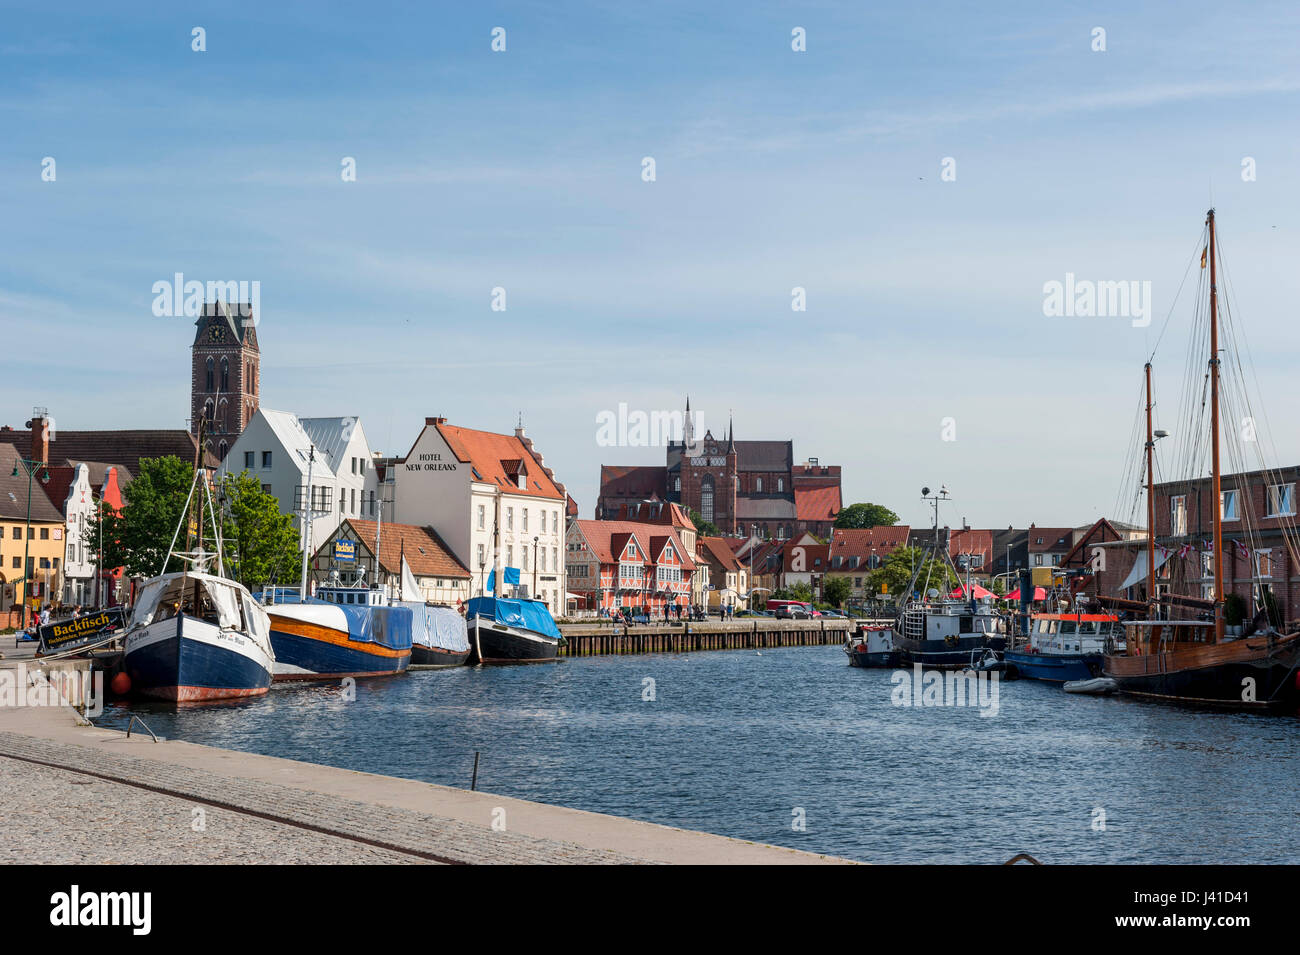 harbour, port in Wismar, Baltic Sea, Germany, Europe - Stock Image